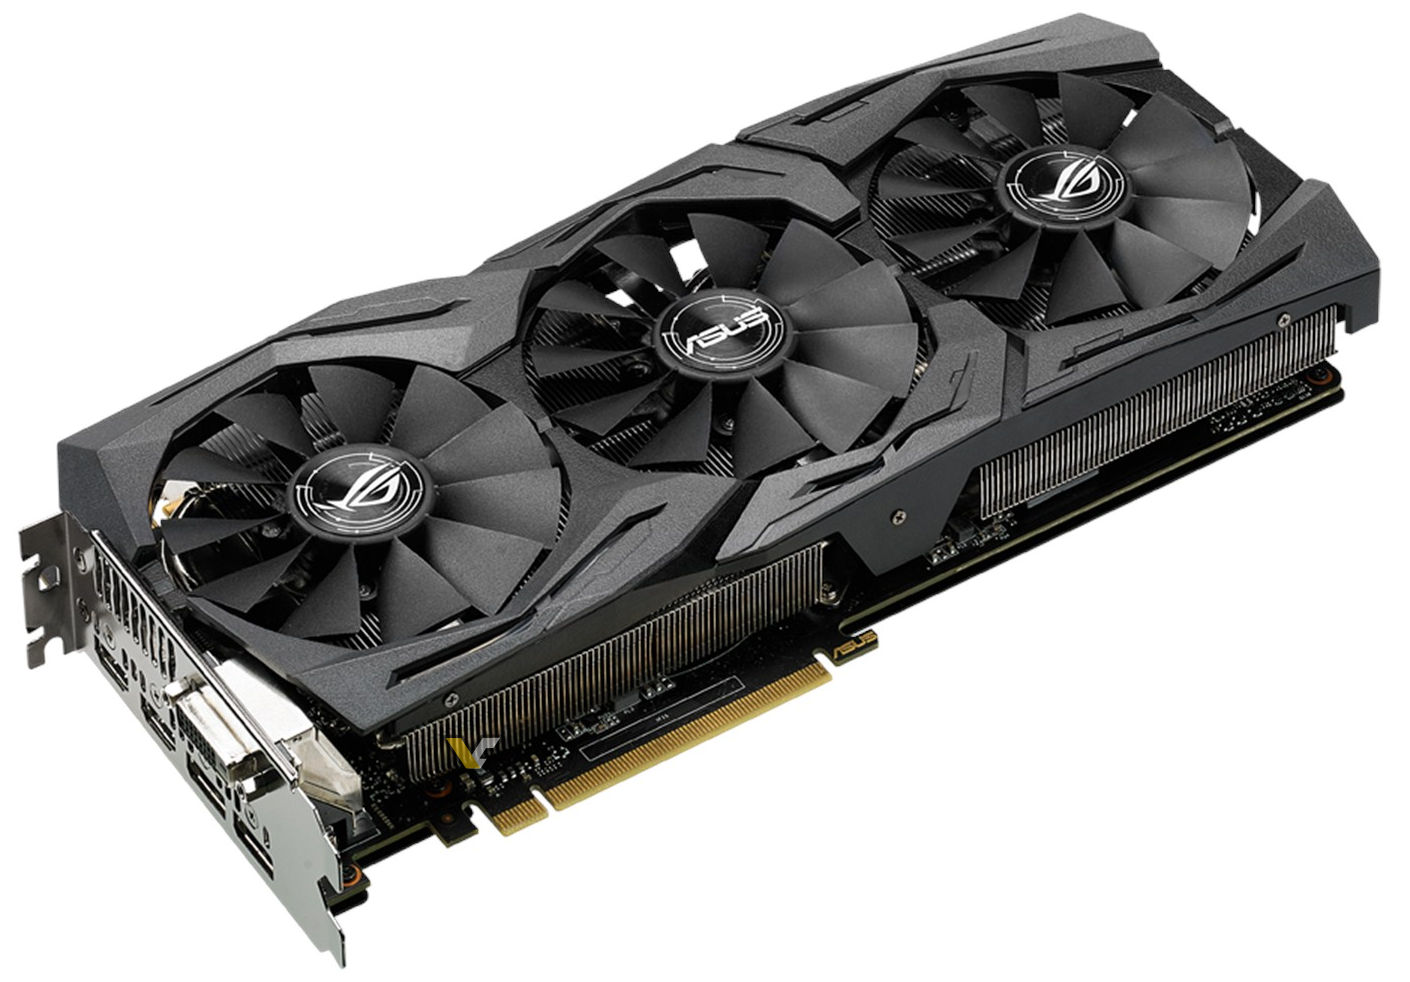 ASUS announces ROG STRIX GeForce GTX 1070 | VideoCardz.com